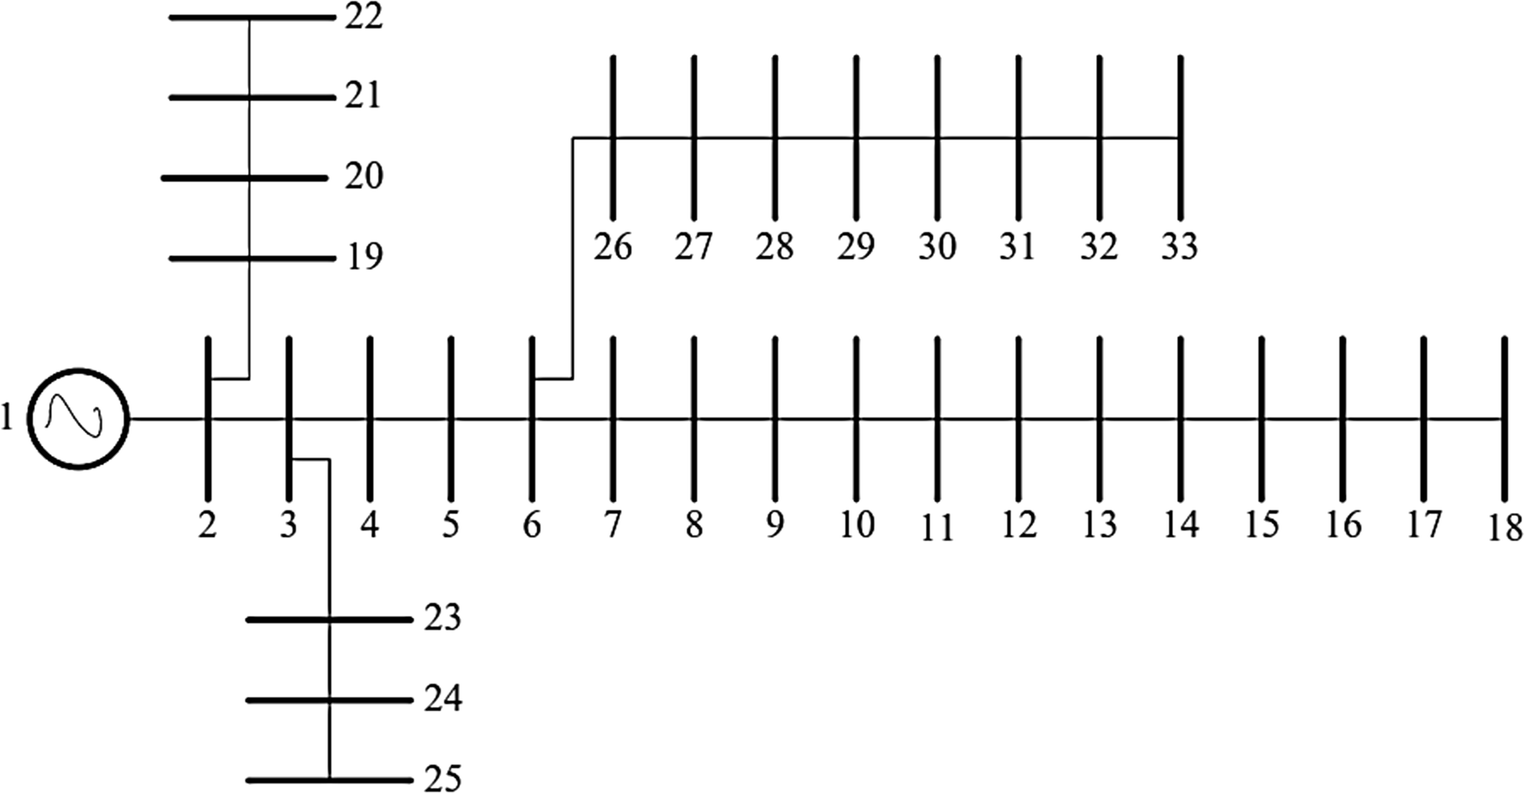 Optimal Sizing and Placement of Capacitors in Radial Distribution